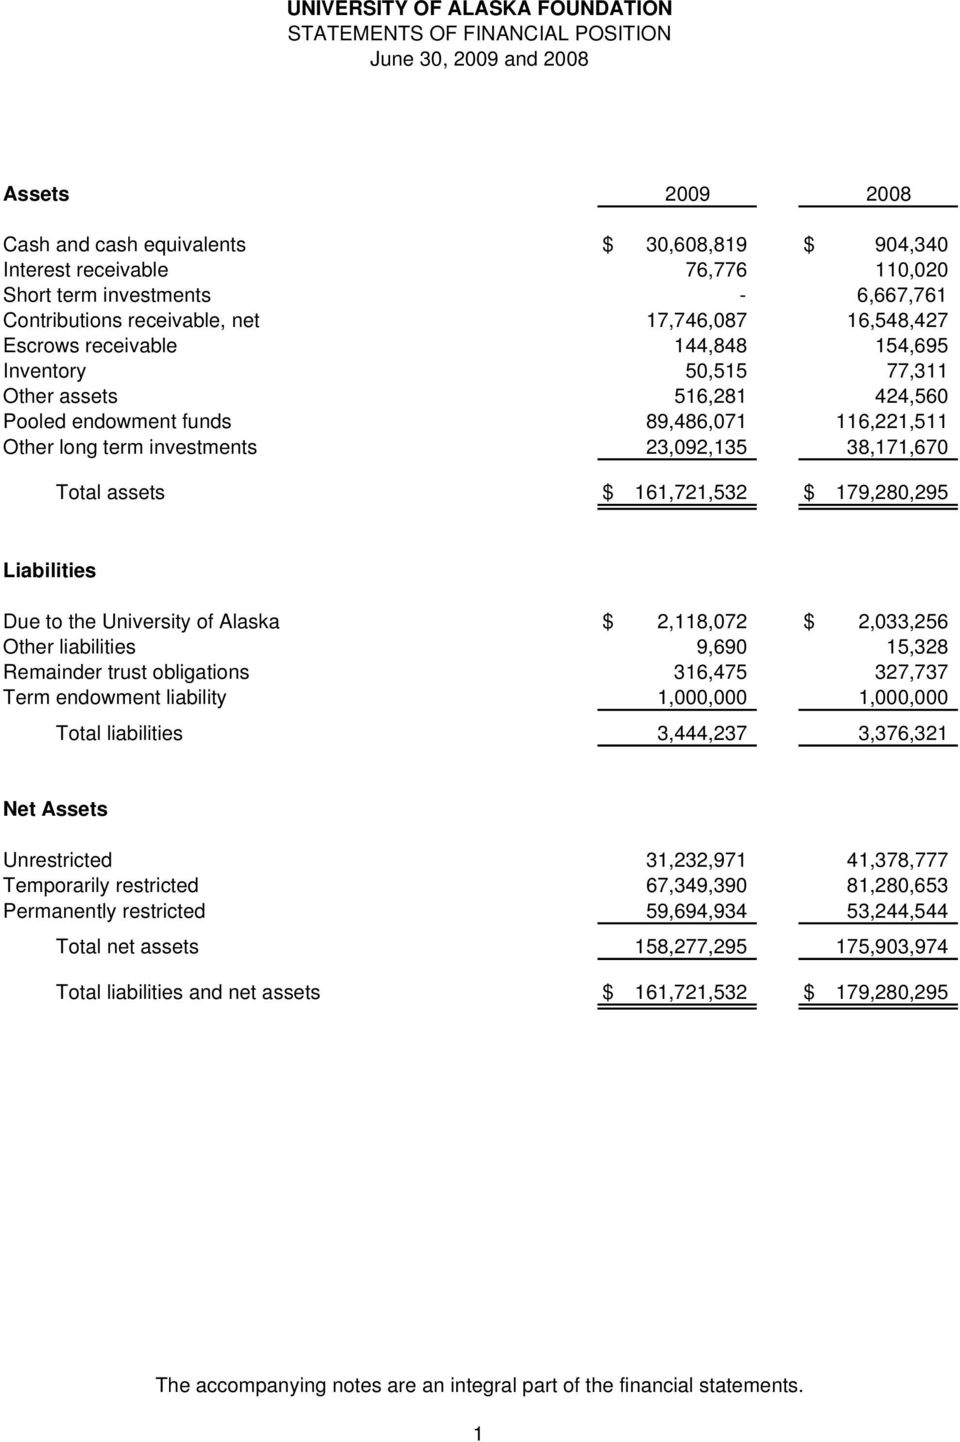 38,171,670 Total assets $ 161,721,532 $ 179,280,295 Liabilities Due to the University of Alaska $ 2,118,072 $ 2,033,256 Other liabilities 9,690 15,328 Remainder trust obligations 316,475 327,737 Term